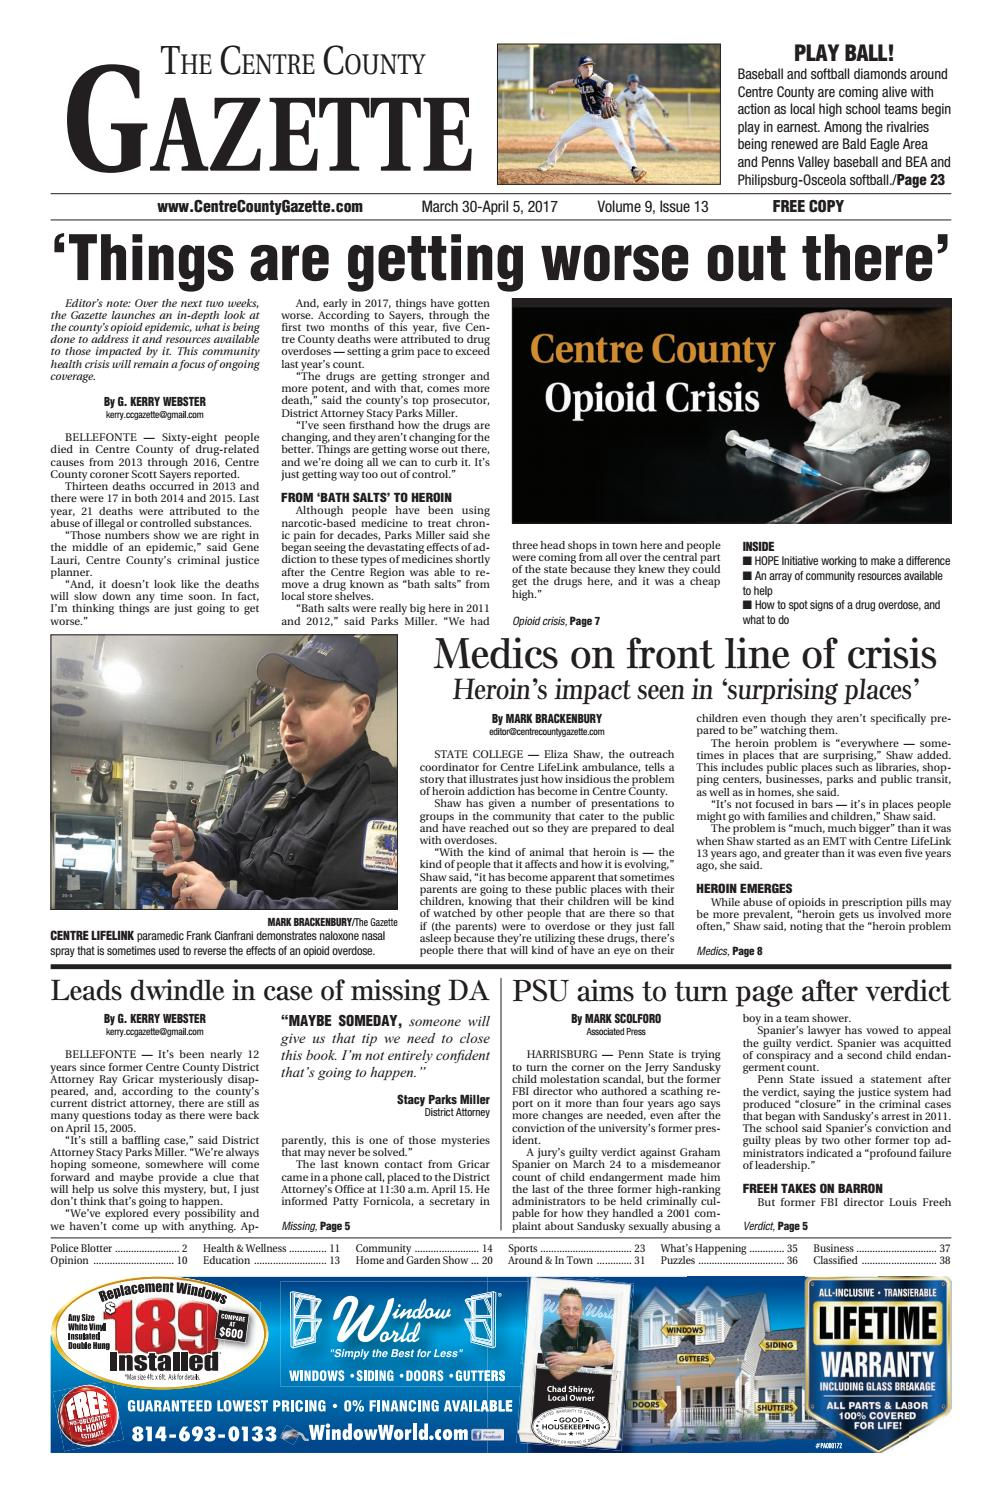 Centre County Gazette, March 30, 2017 by Indiana Printing